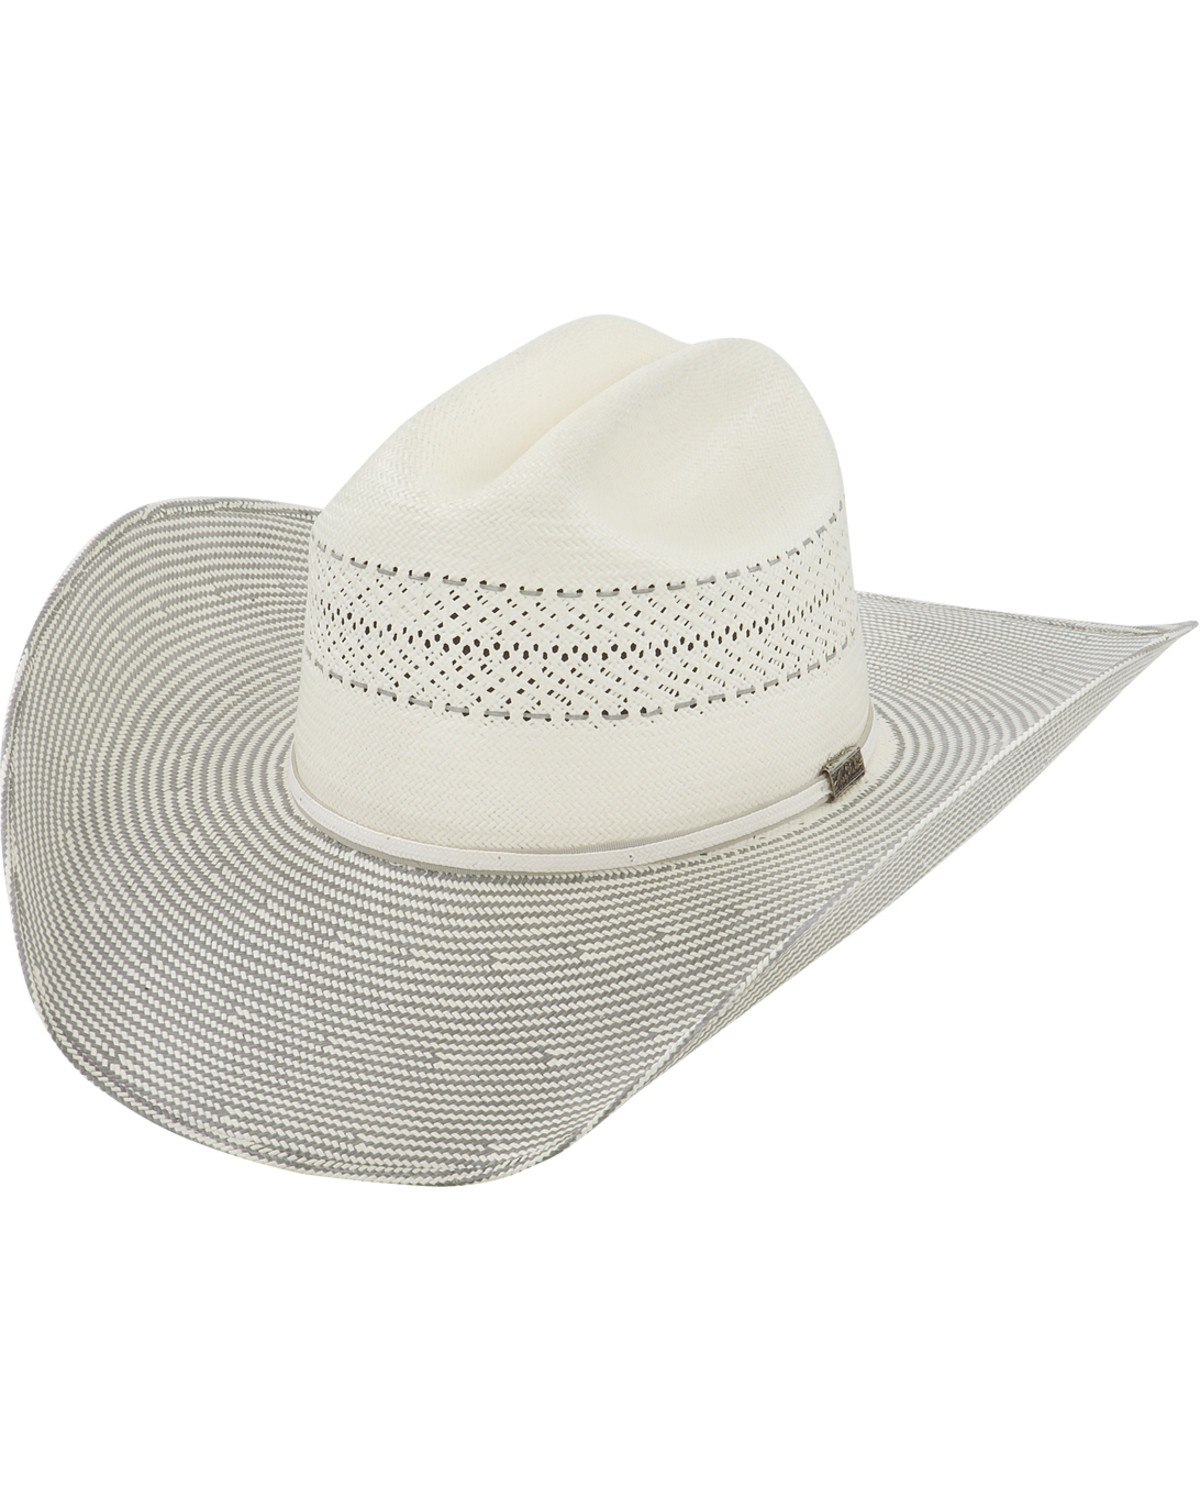 Larry Mahan Men s 10X Grey Cinch Straw Cowboy Hat  c1d014c6357